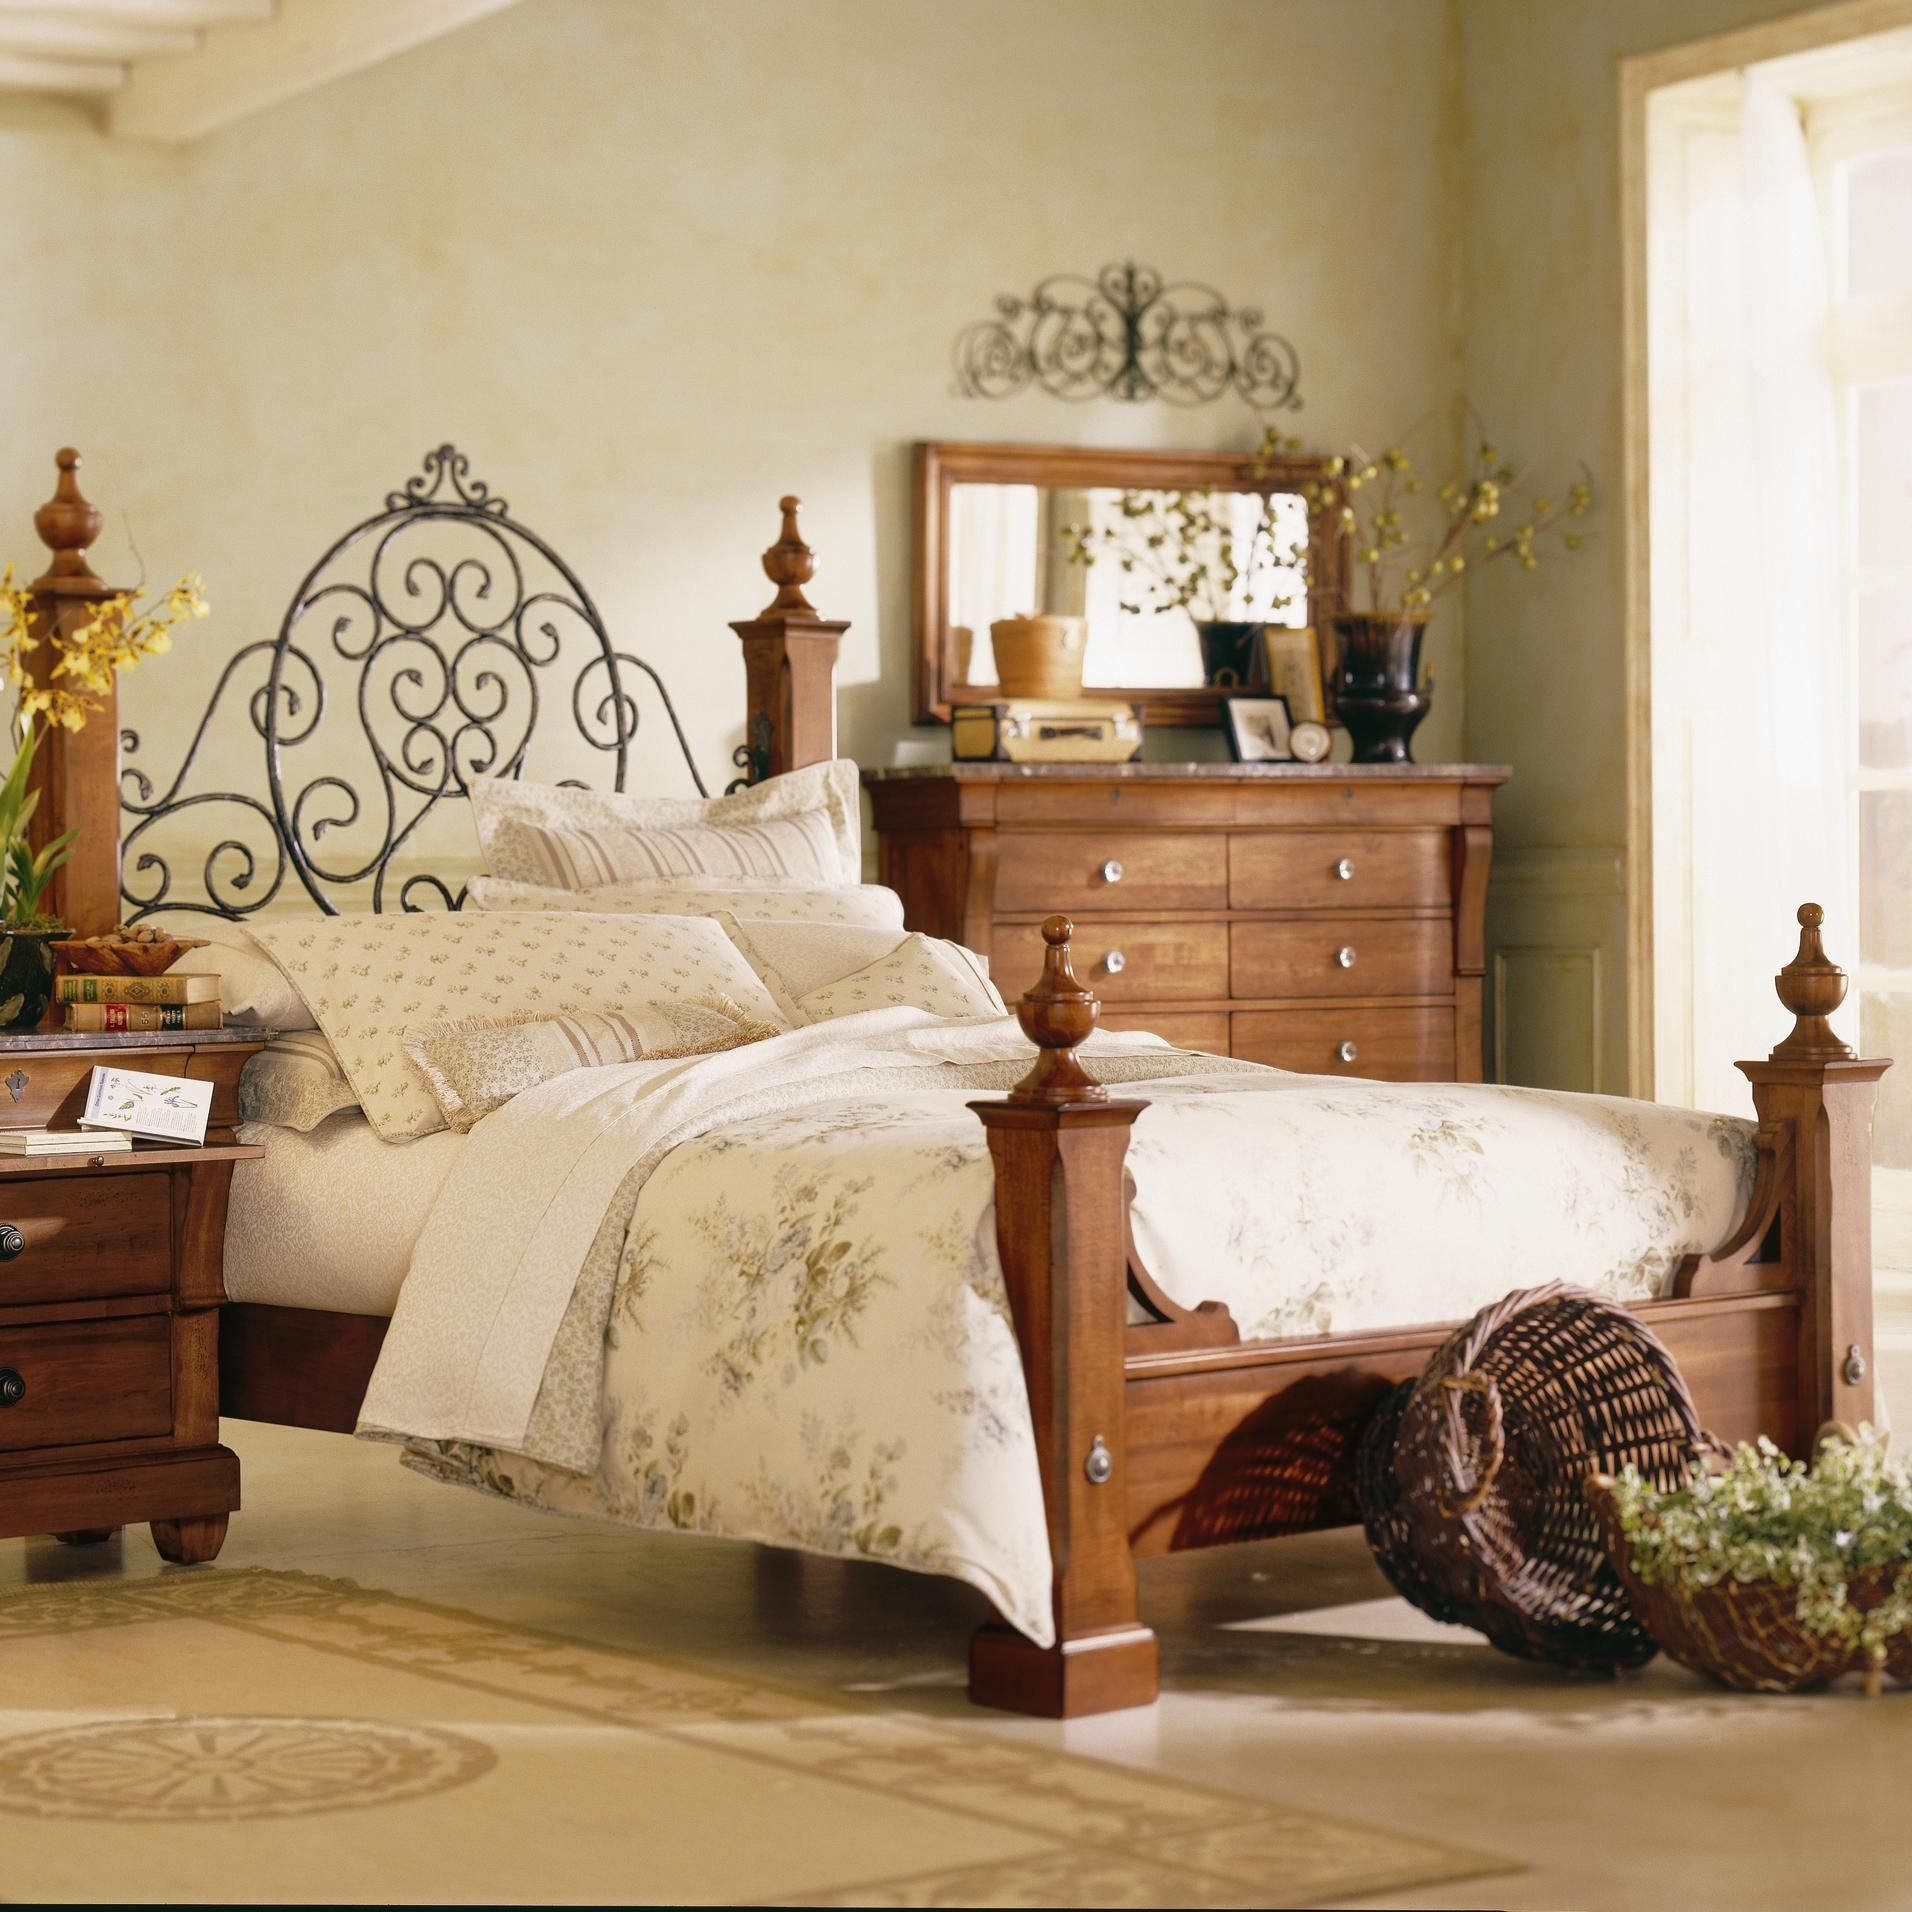 Ashley Furniture Beaumont Tx: Tuscano Queen Poster Bed By Kincaid Furniture